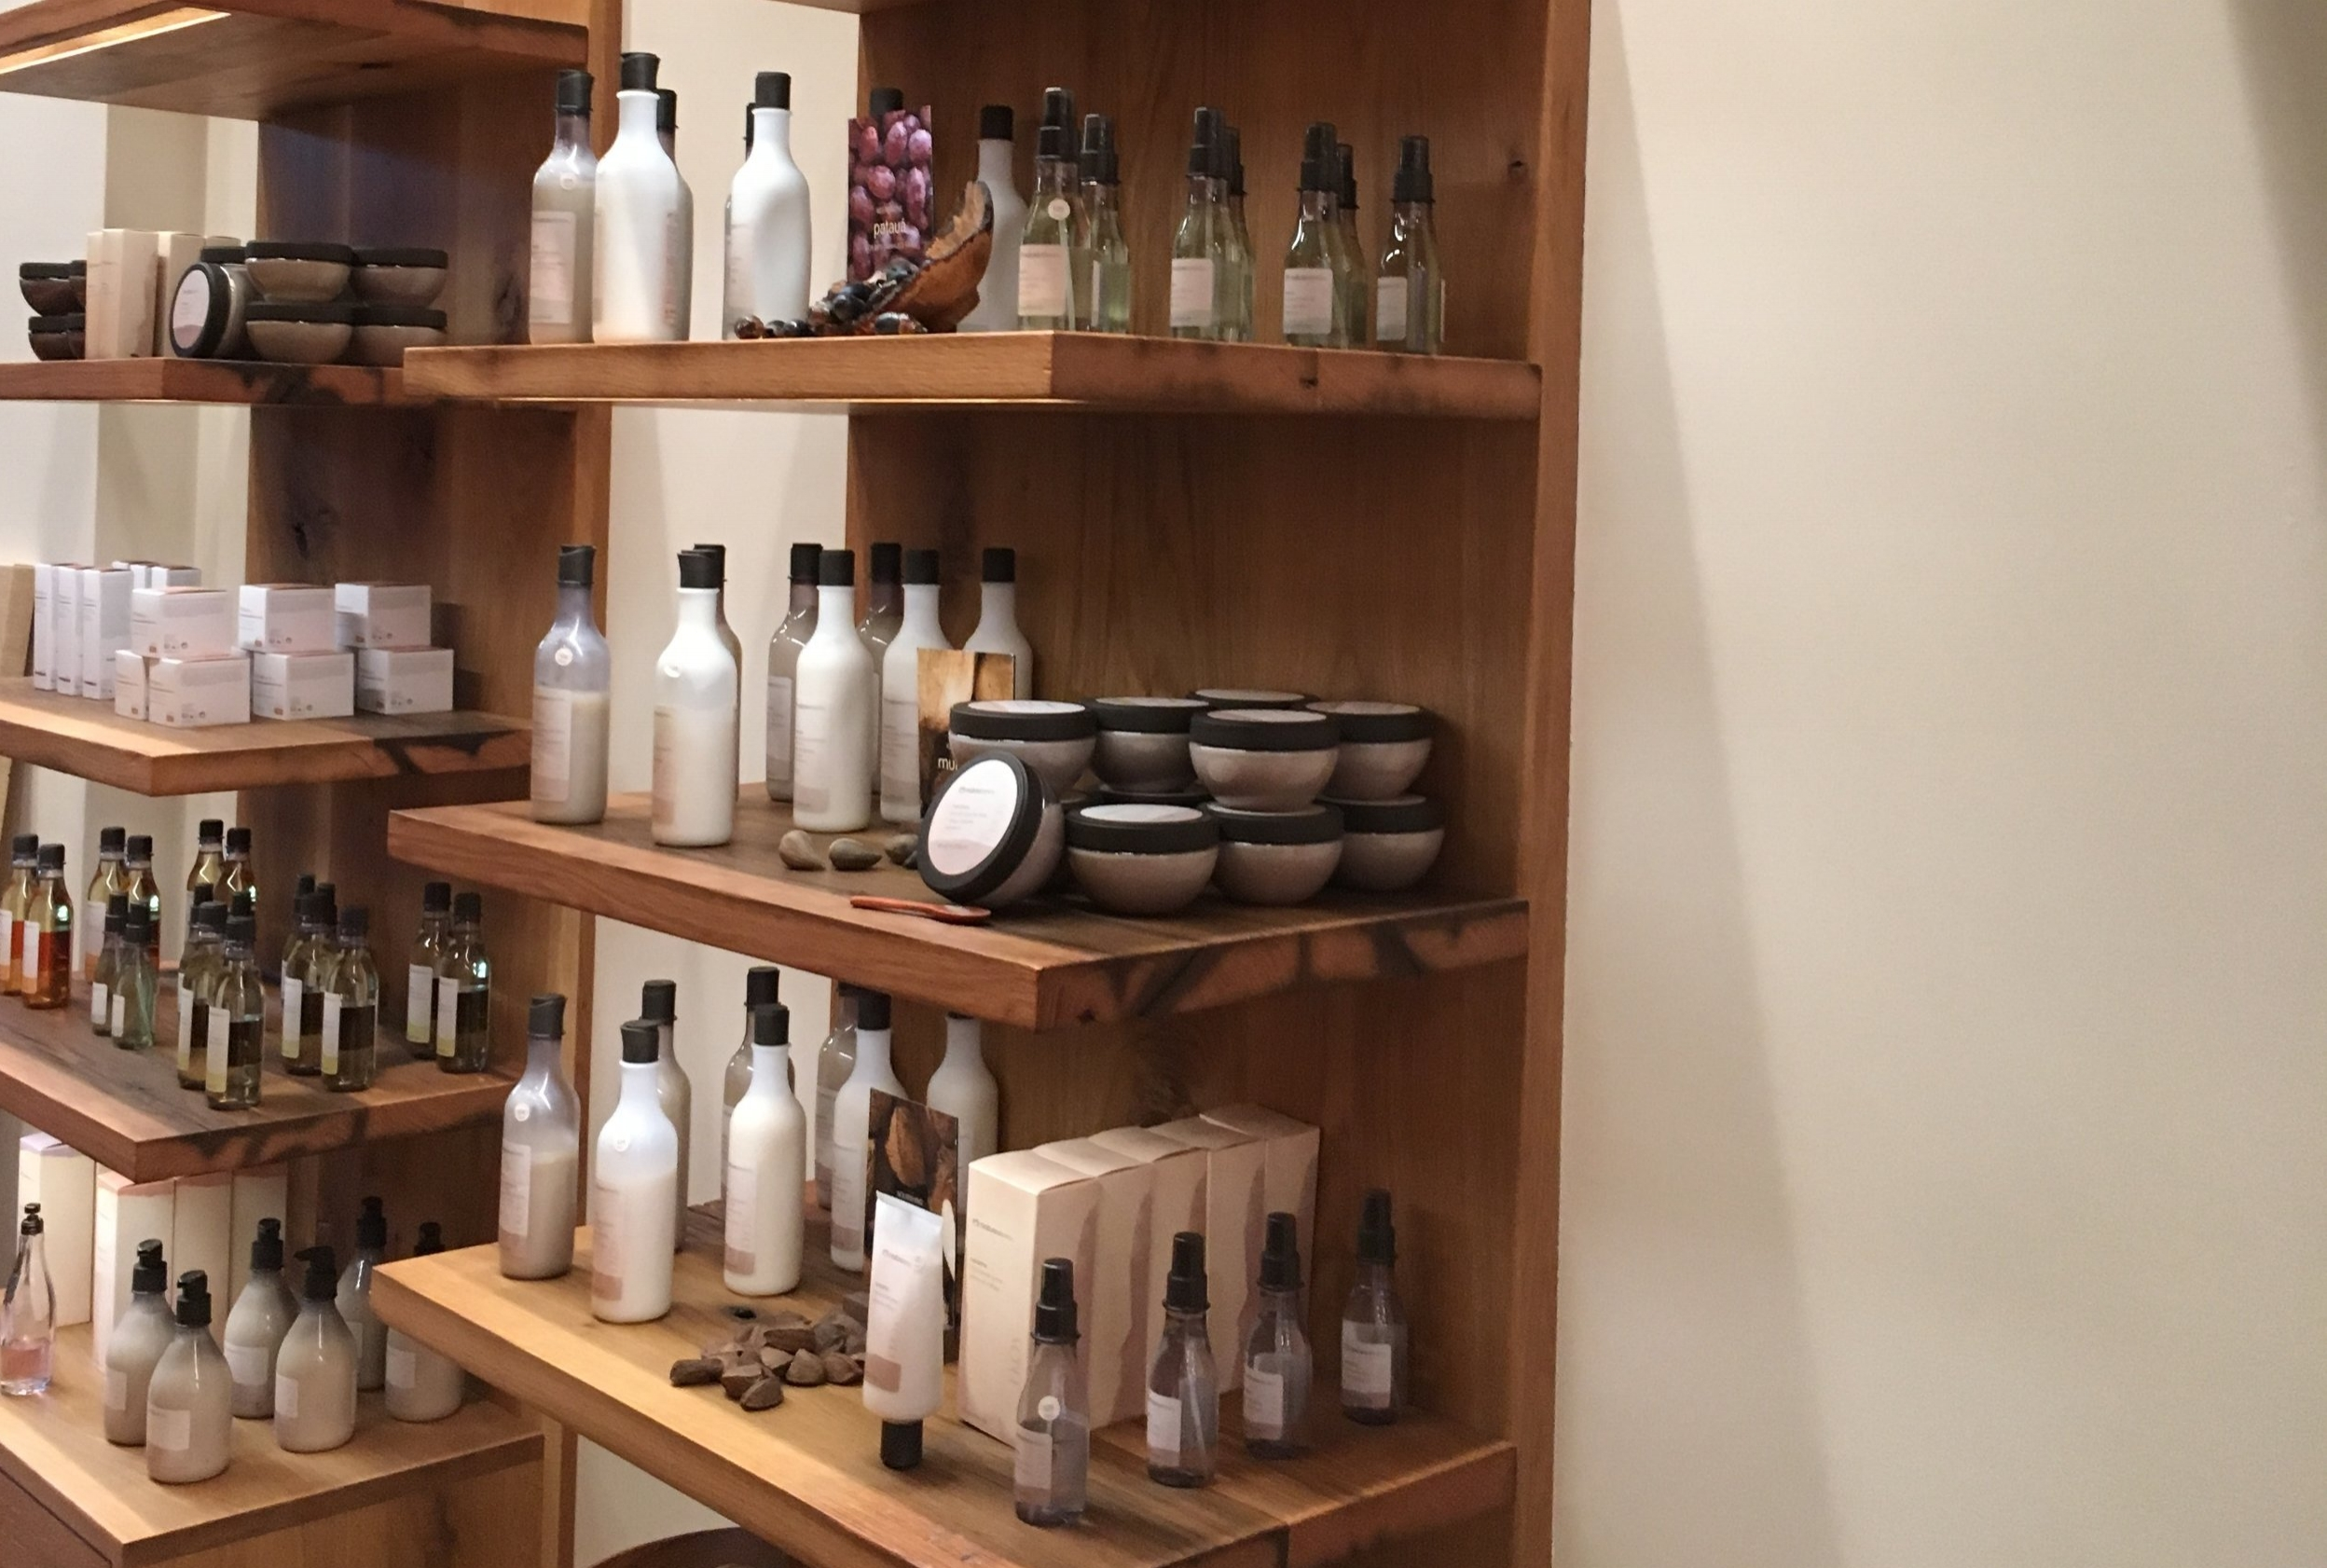 EKOS products at the Natura shop in New York City